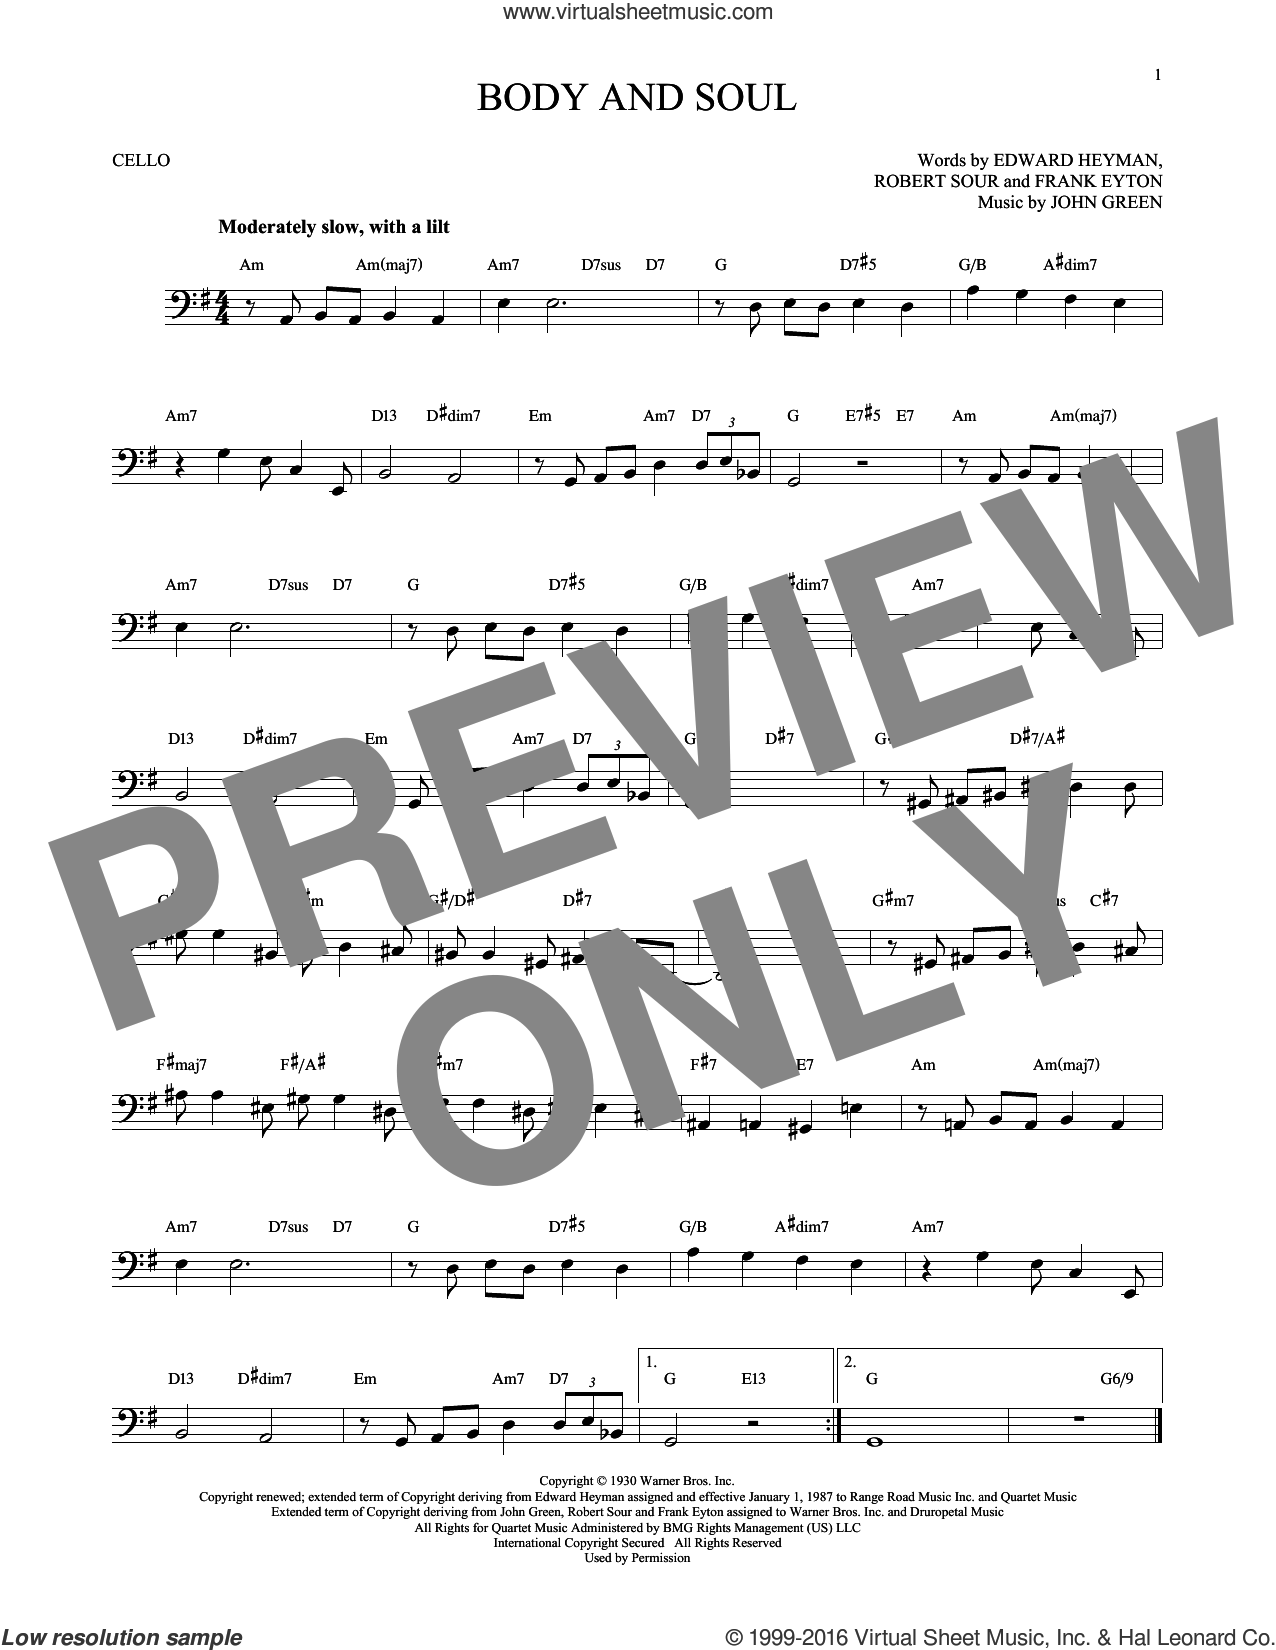 Body And Soul sheet music for cello solo by Edward Heyman, Tony Bennett & Amy Winehouse, Frank Eyton, Johnny Green and Robert Sour, intermediate skill level